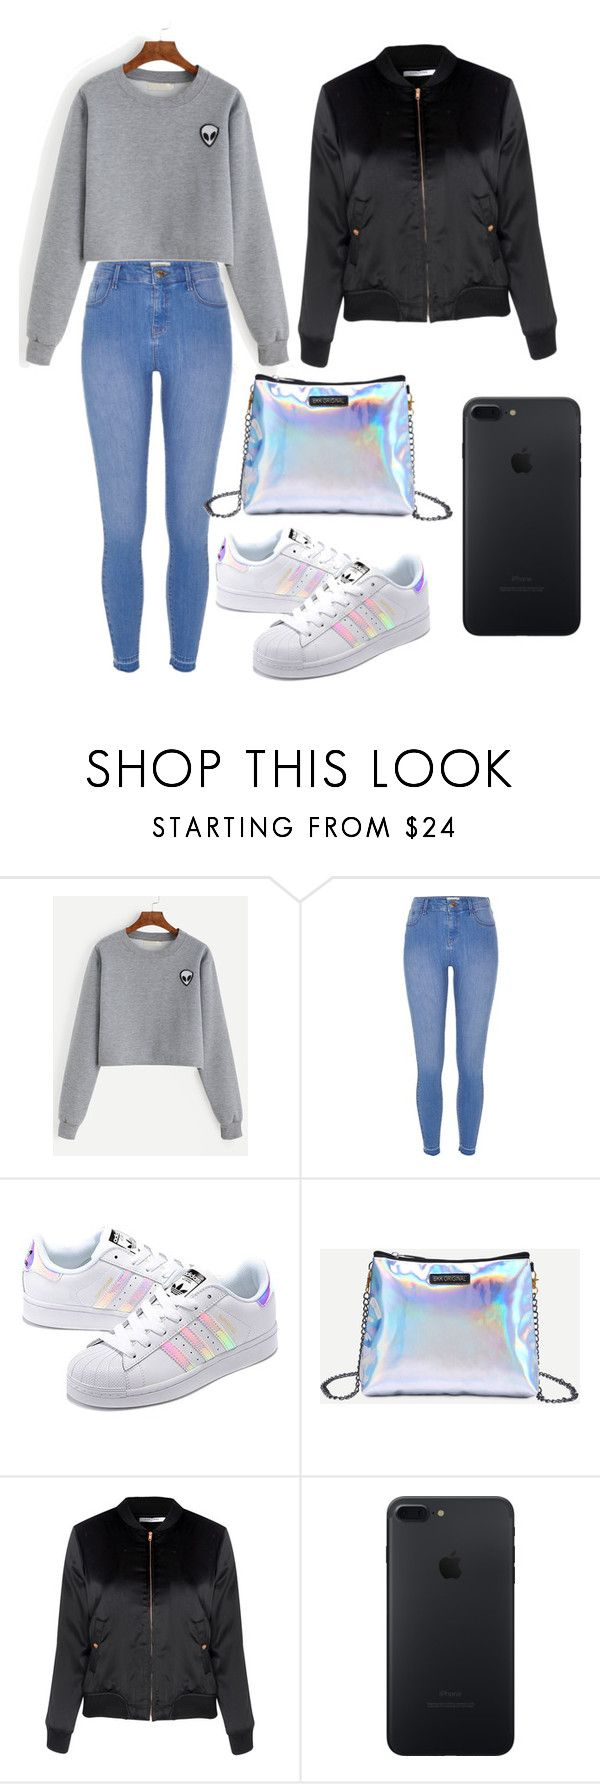 """""""Untitled #251"""" by timcaaa on Polyvore featuring River Island, adidas Originals and Glamorous"""